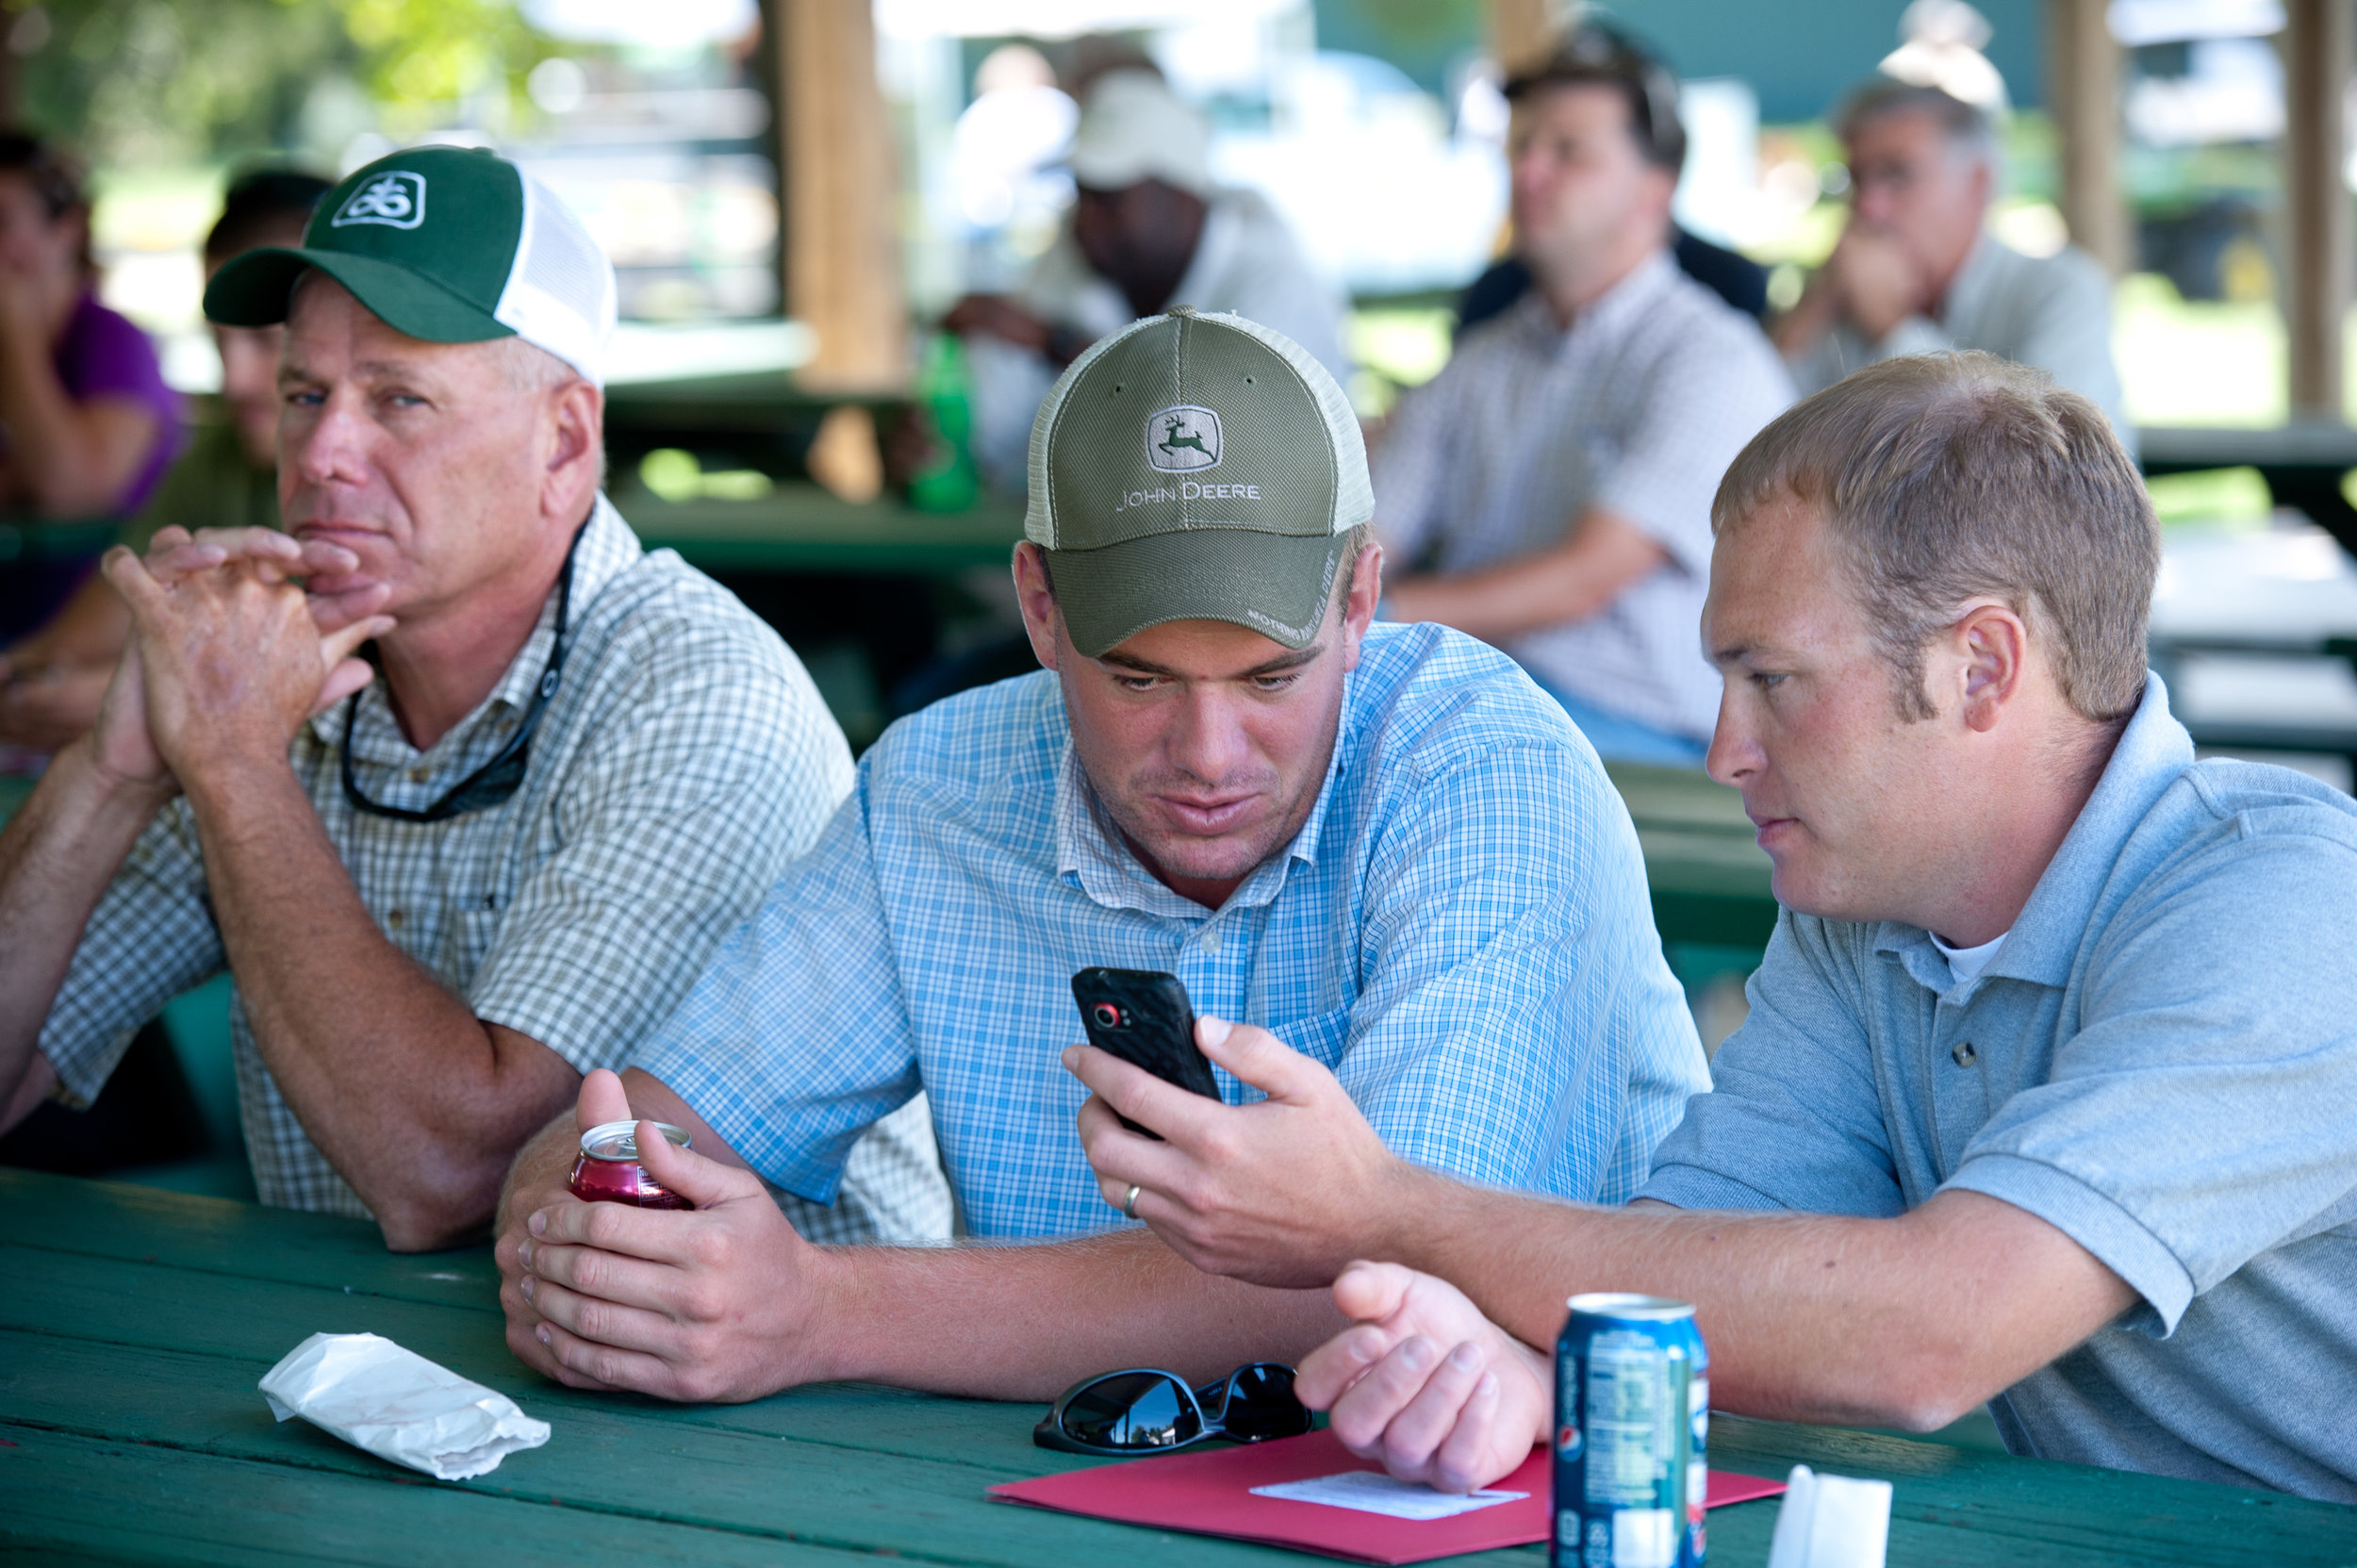 Photo shows men looking at a mobile phone.  Photo credit Edwin Remsberg.